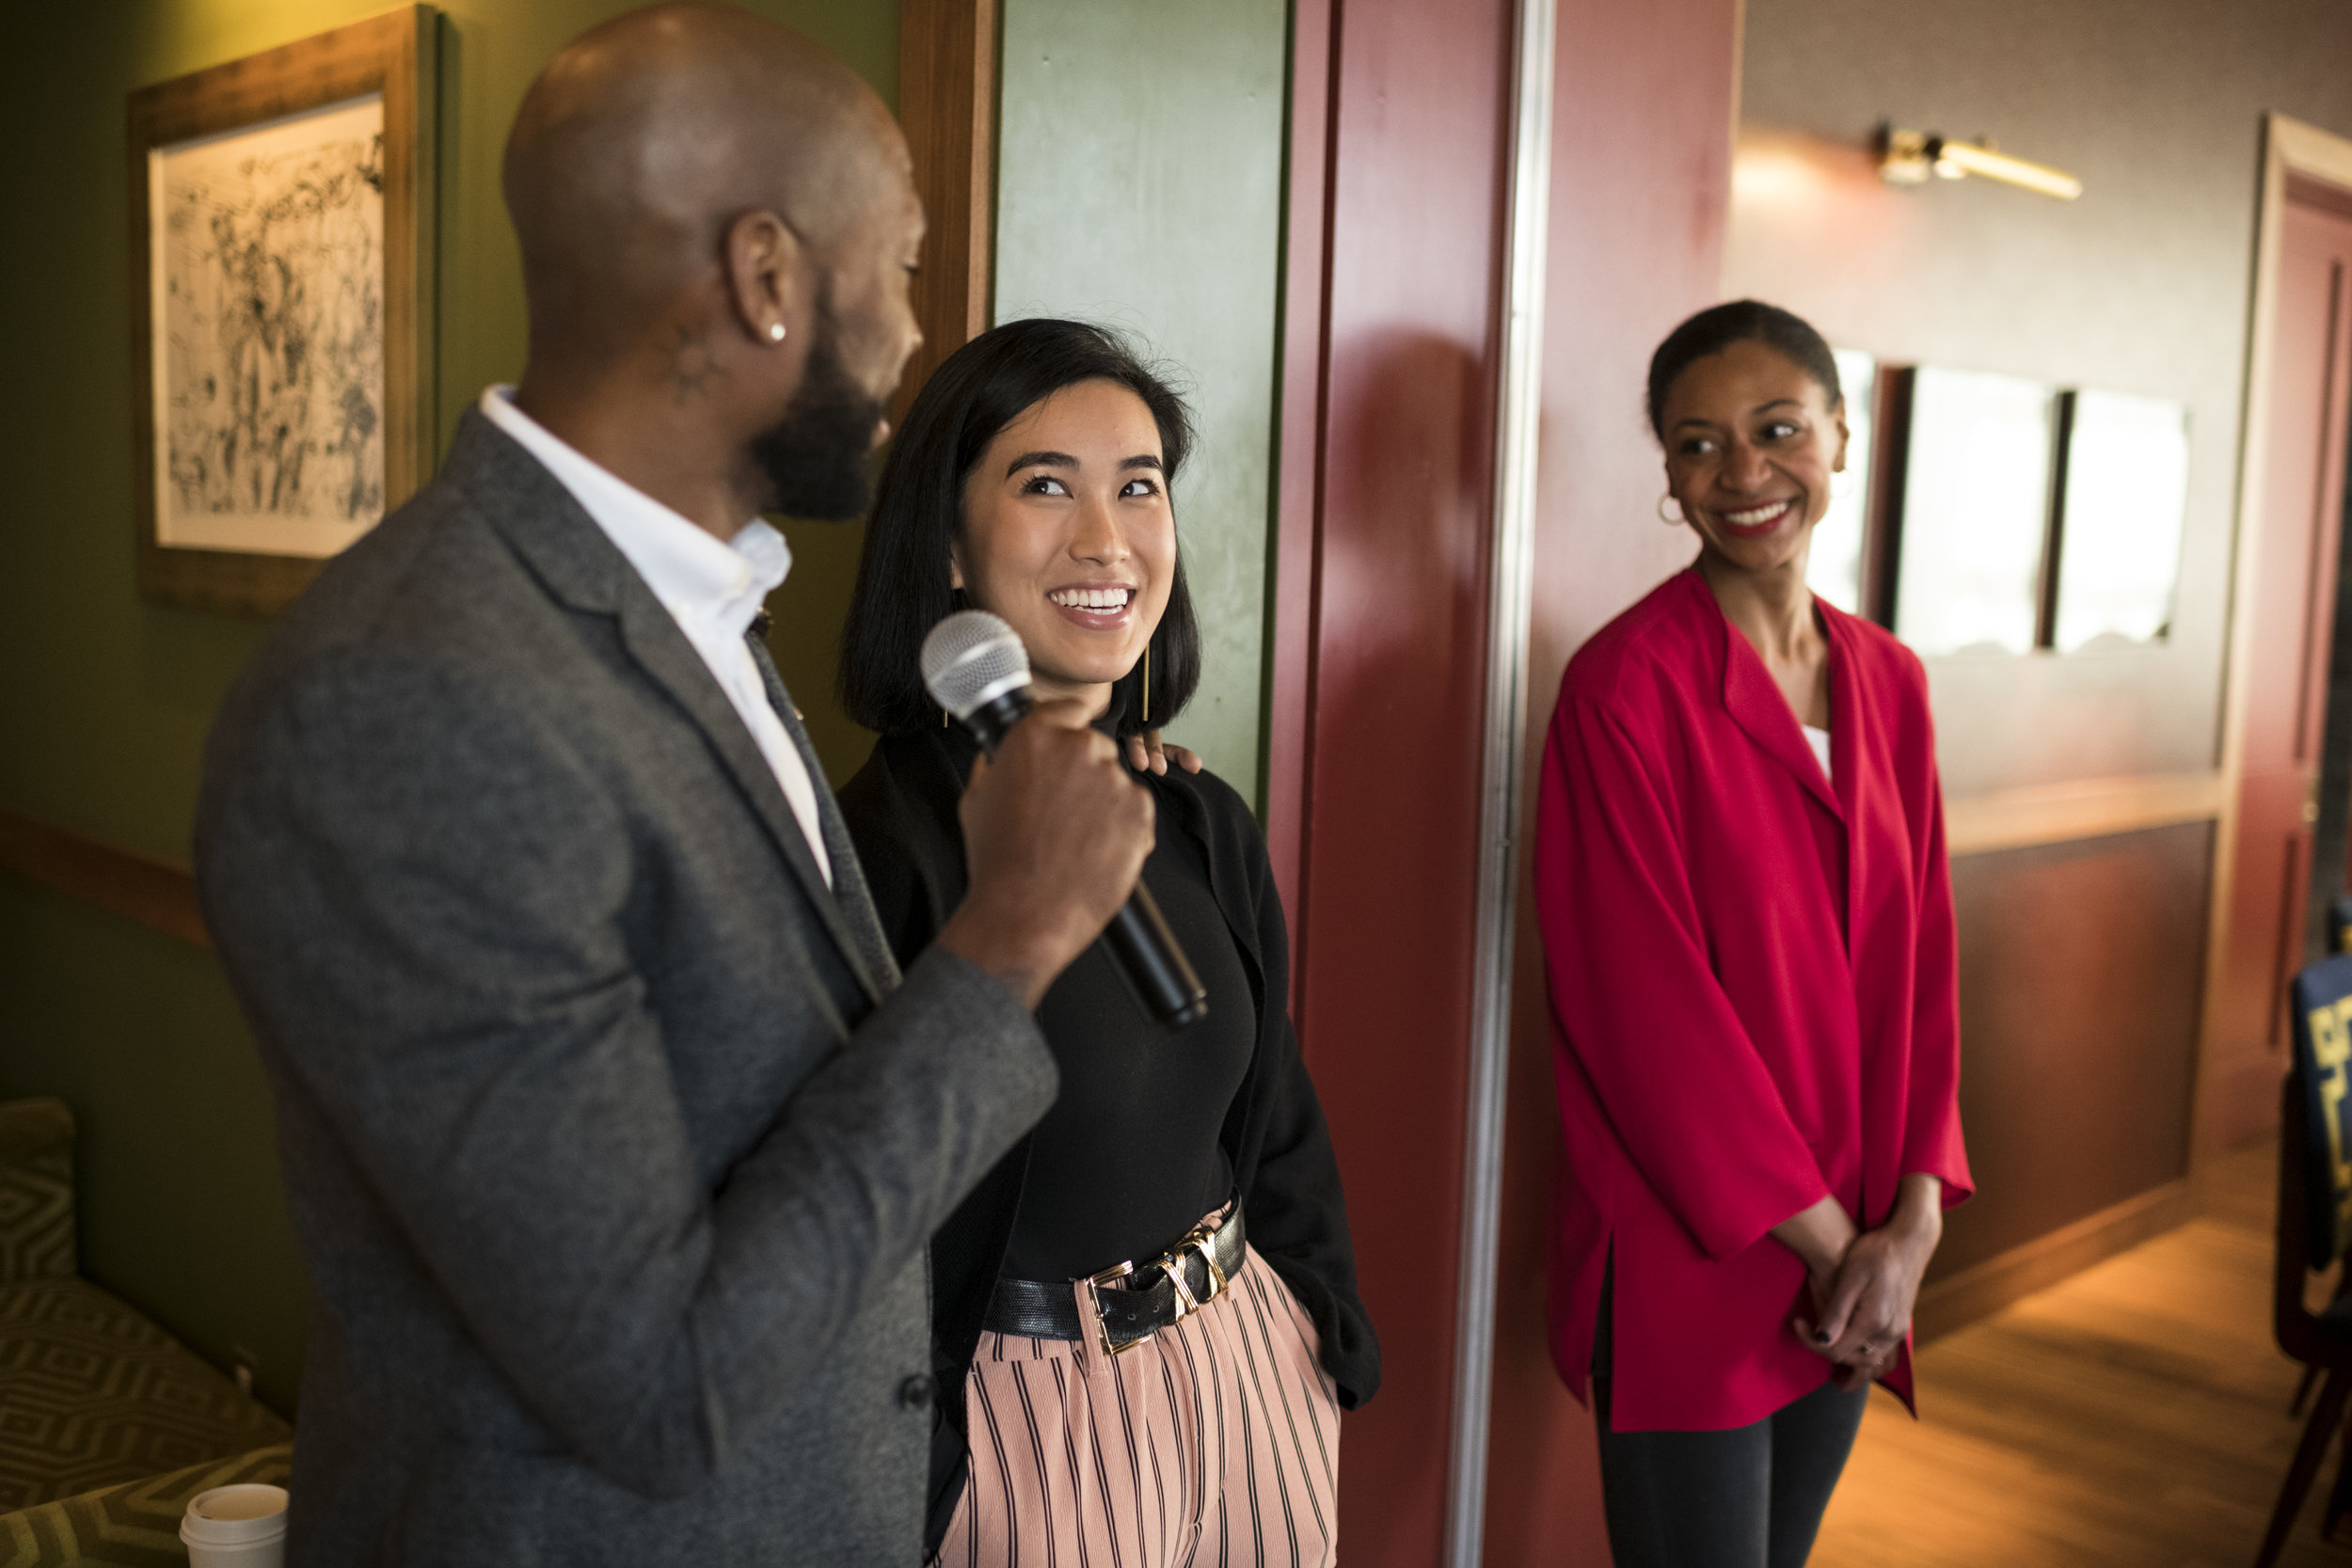 COCA alumni Karina Encarnación (center) and Lauren Morrow (right) talk with COCA Co-Artistic Director of Dance and alumnus Antonio Douthit-Boyd during brunch at Legacy Records in Hudson Yards. Photo by Jacob Blickenstaff.